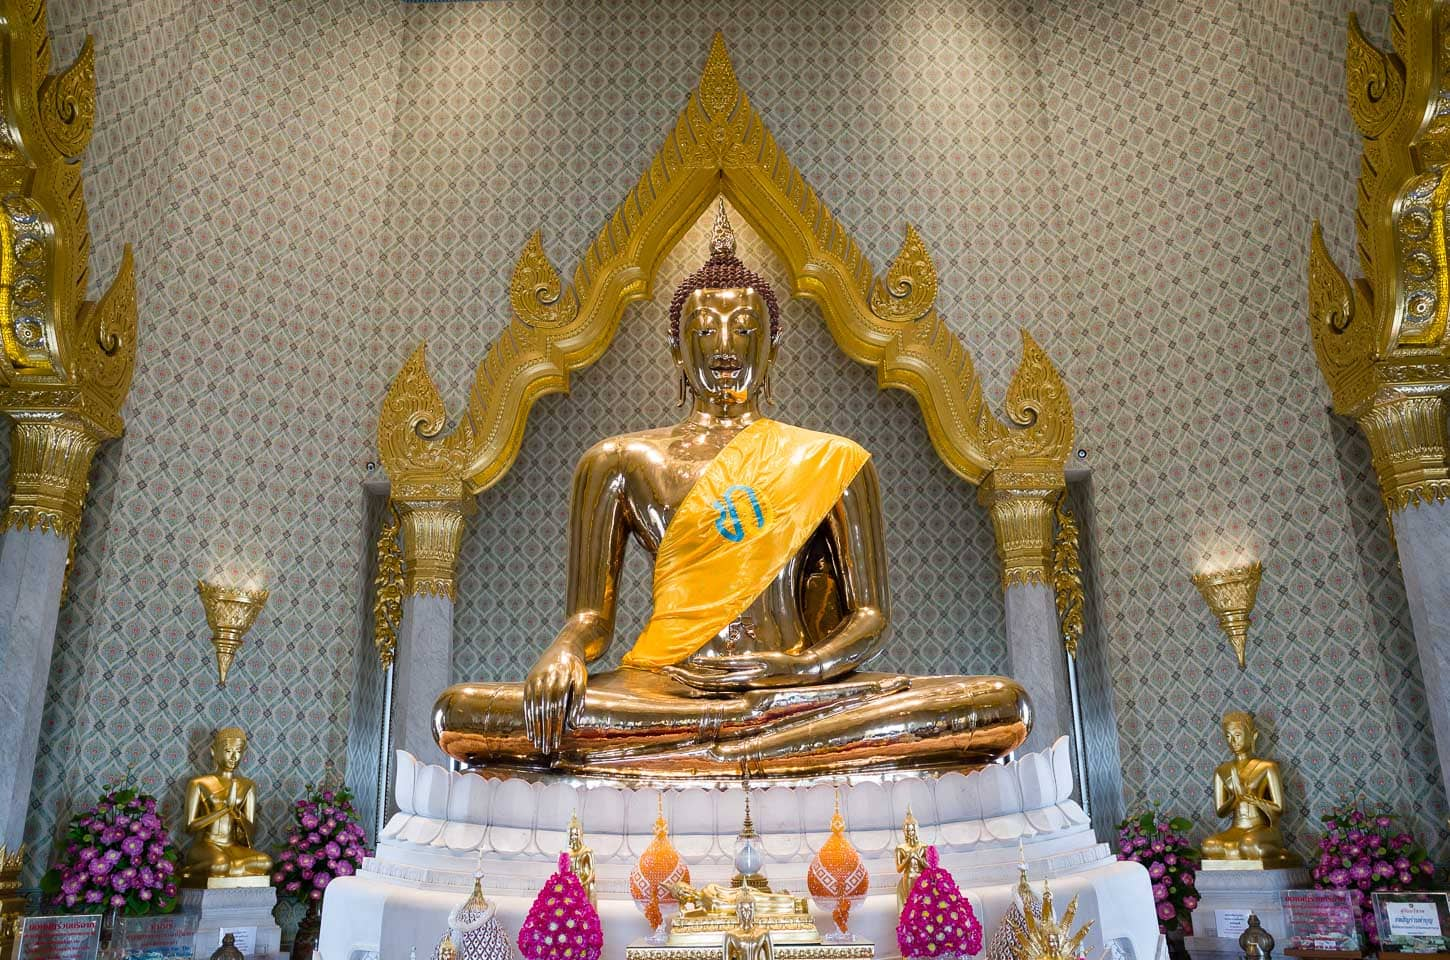 Solid gold Buddha at Wat Traimit temple in Bangkok, Thailand